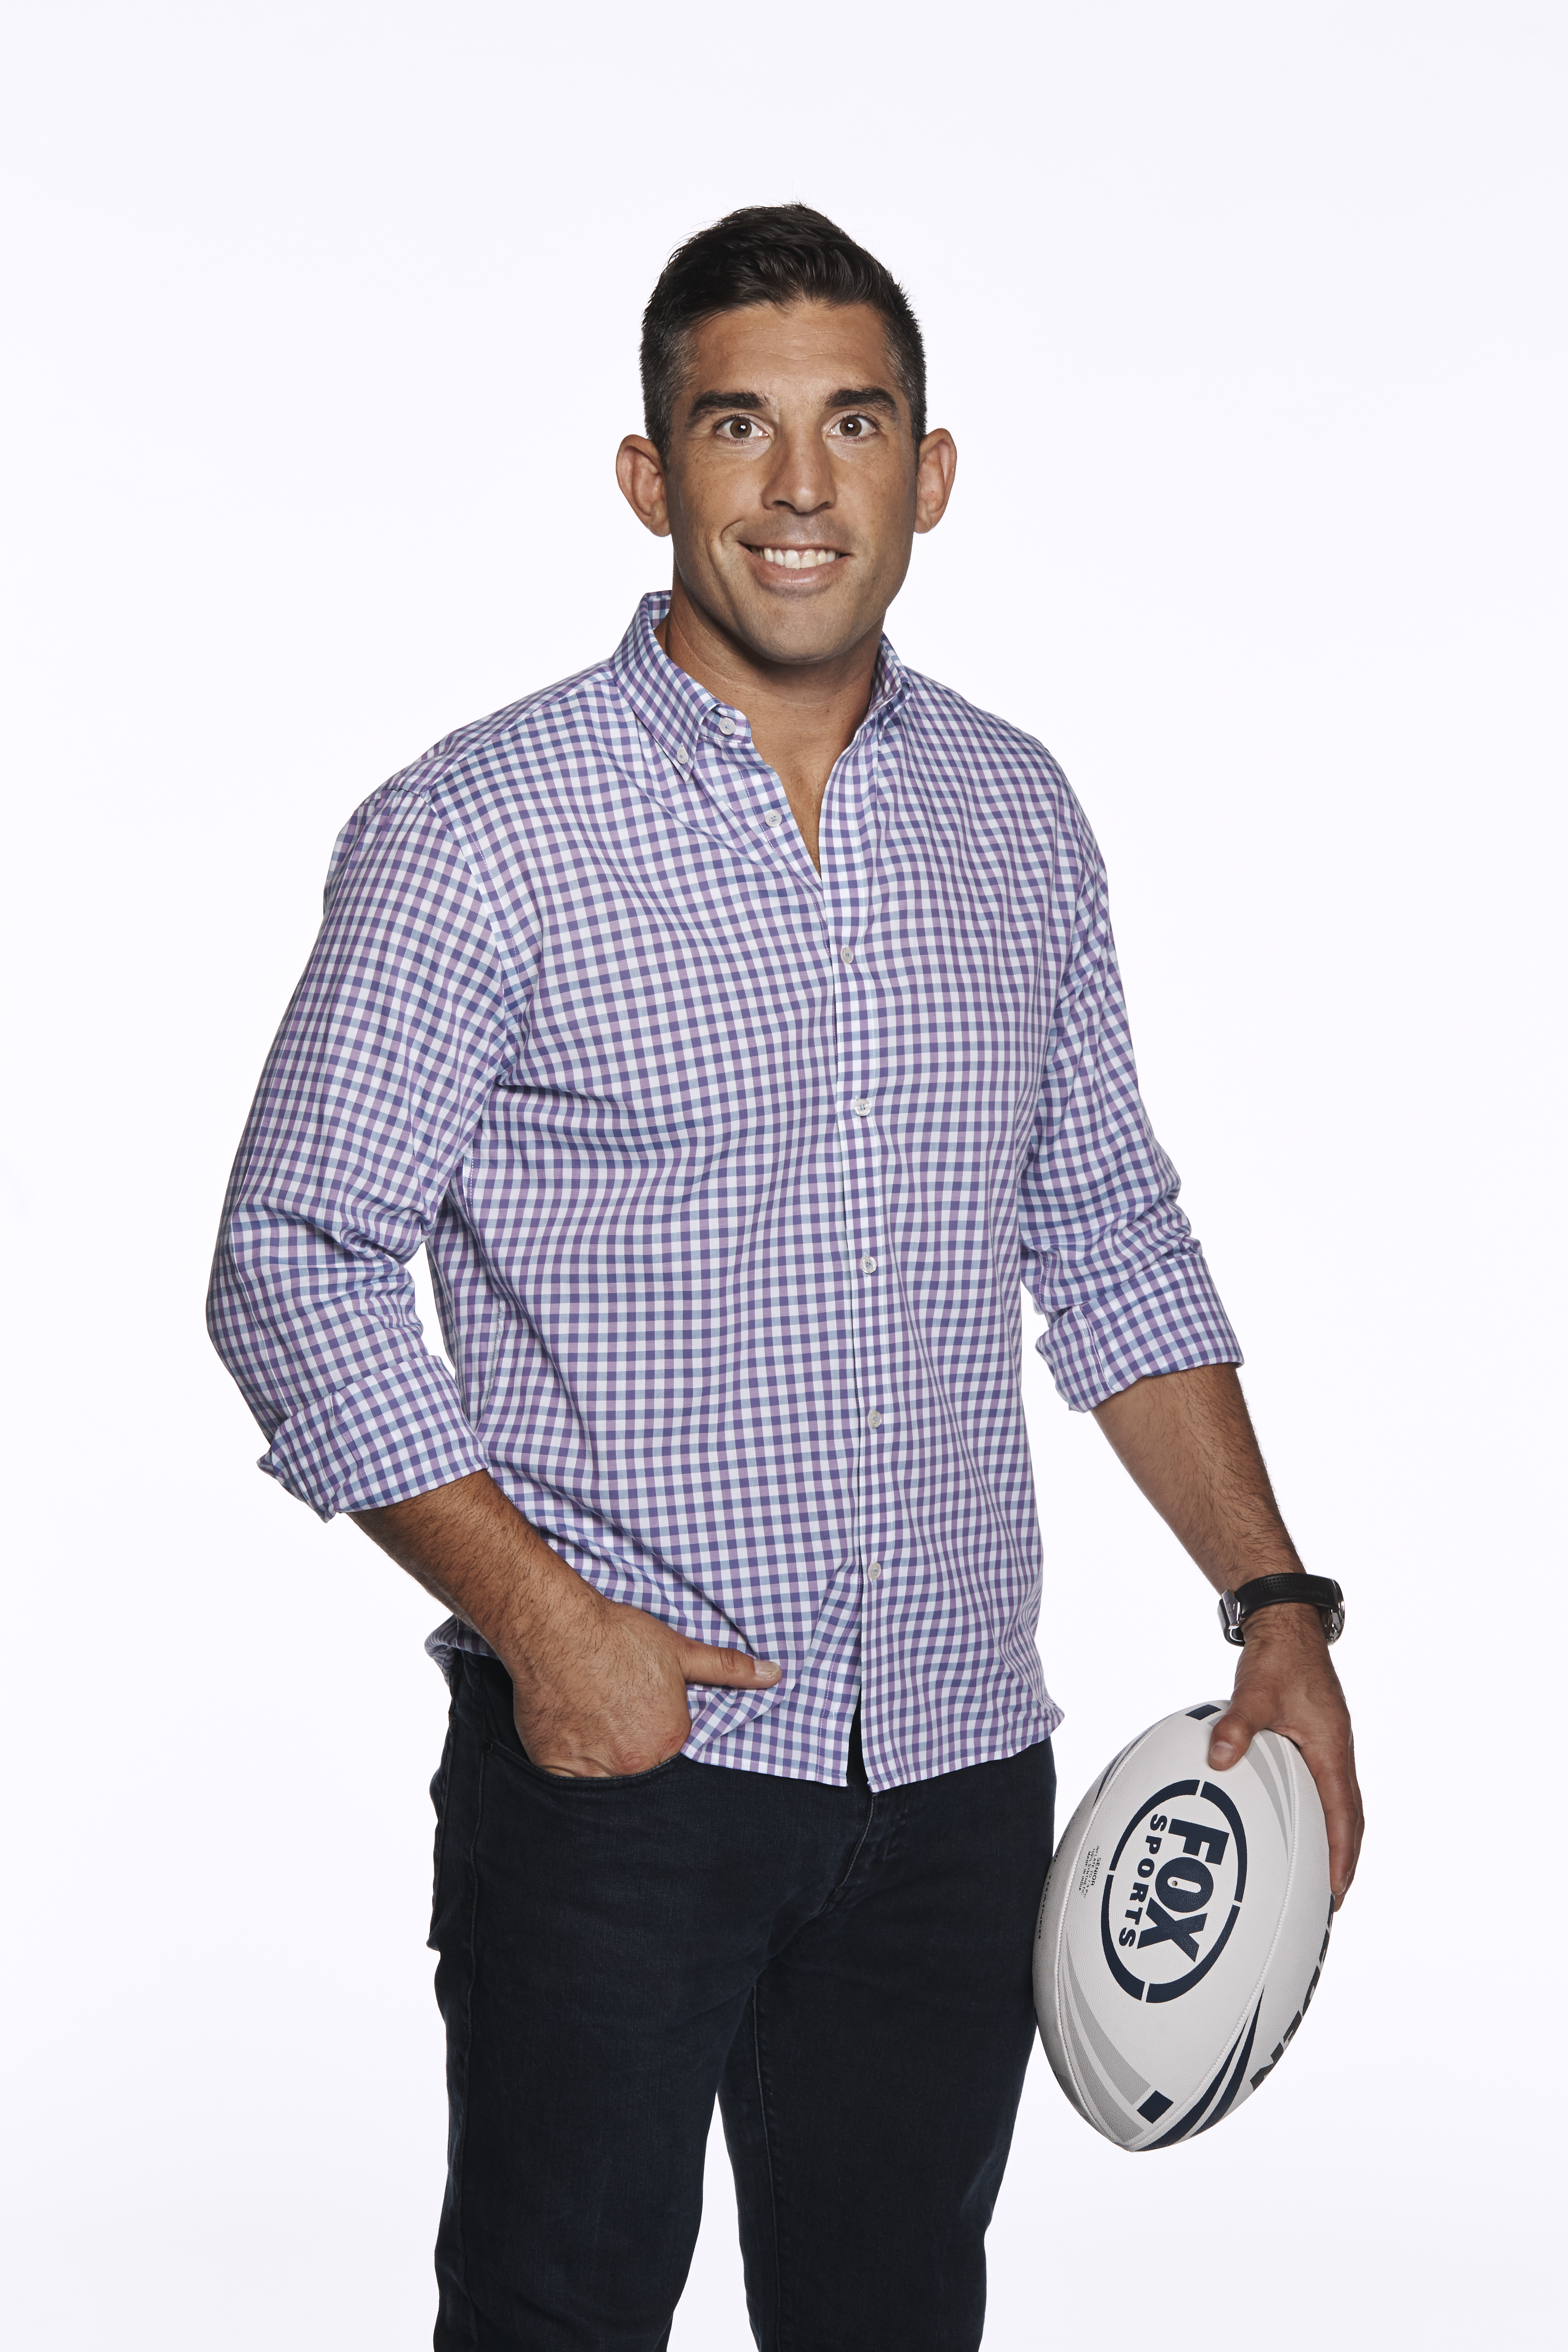 Braith Anasta opens up about his NRL heroes for Retro Round